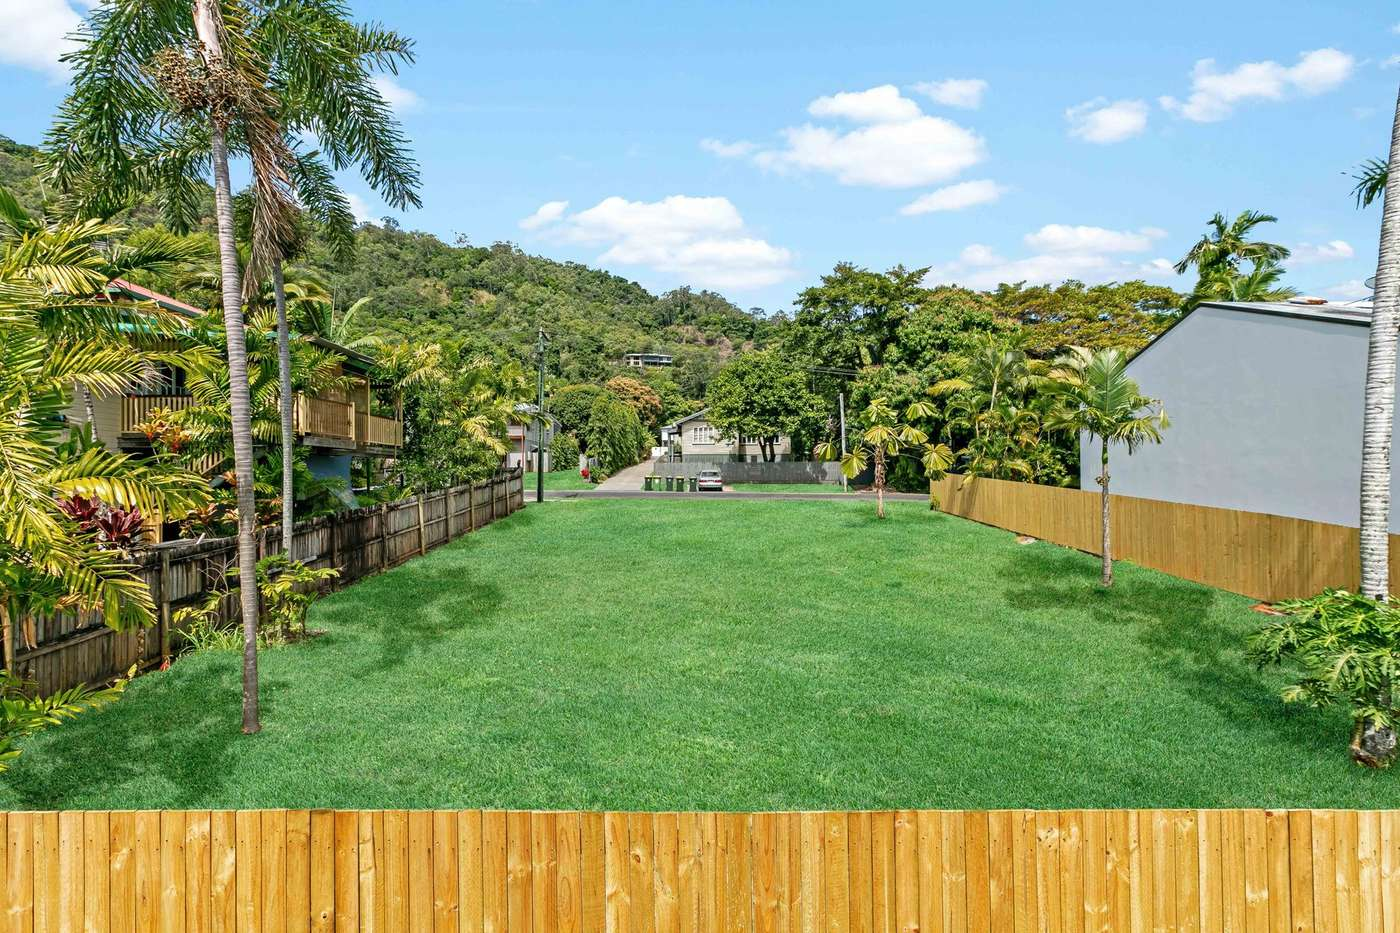 Main view of Homely  listing, Lot 132, 52 Behan Street, Stratford, QLD 4870